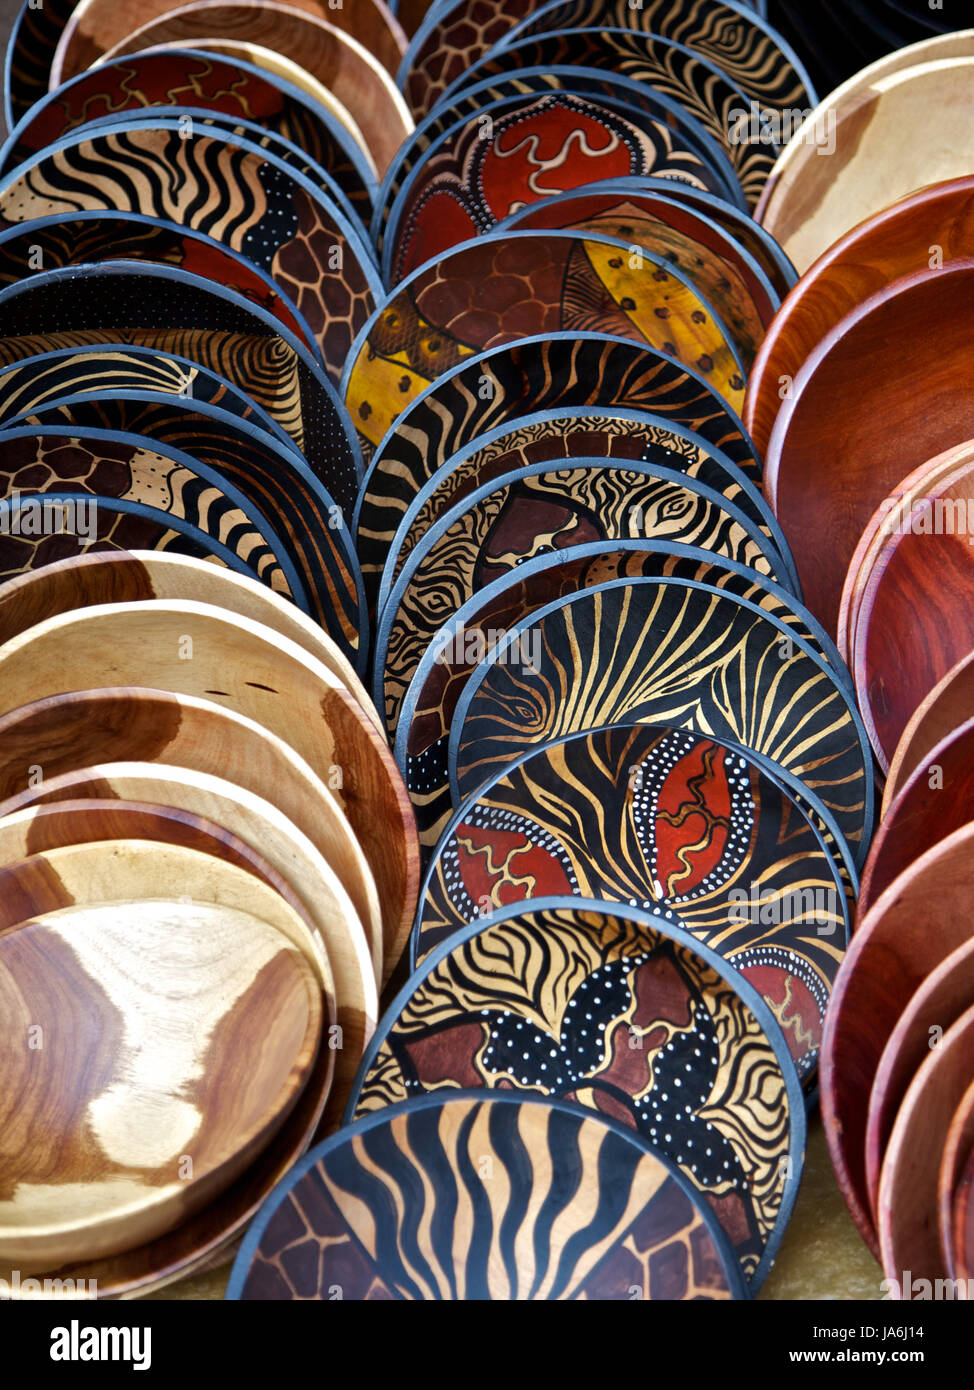 South Africa African Painted Wooden Cape Town Bowls Design